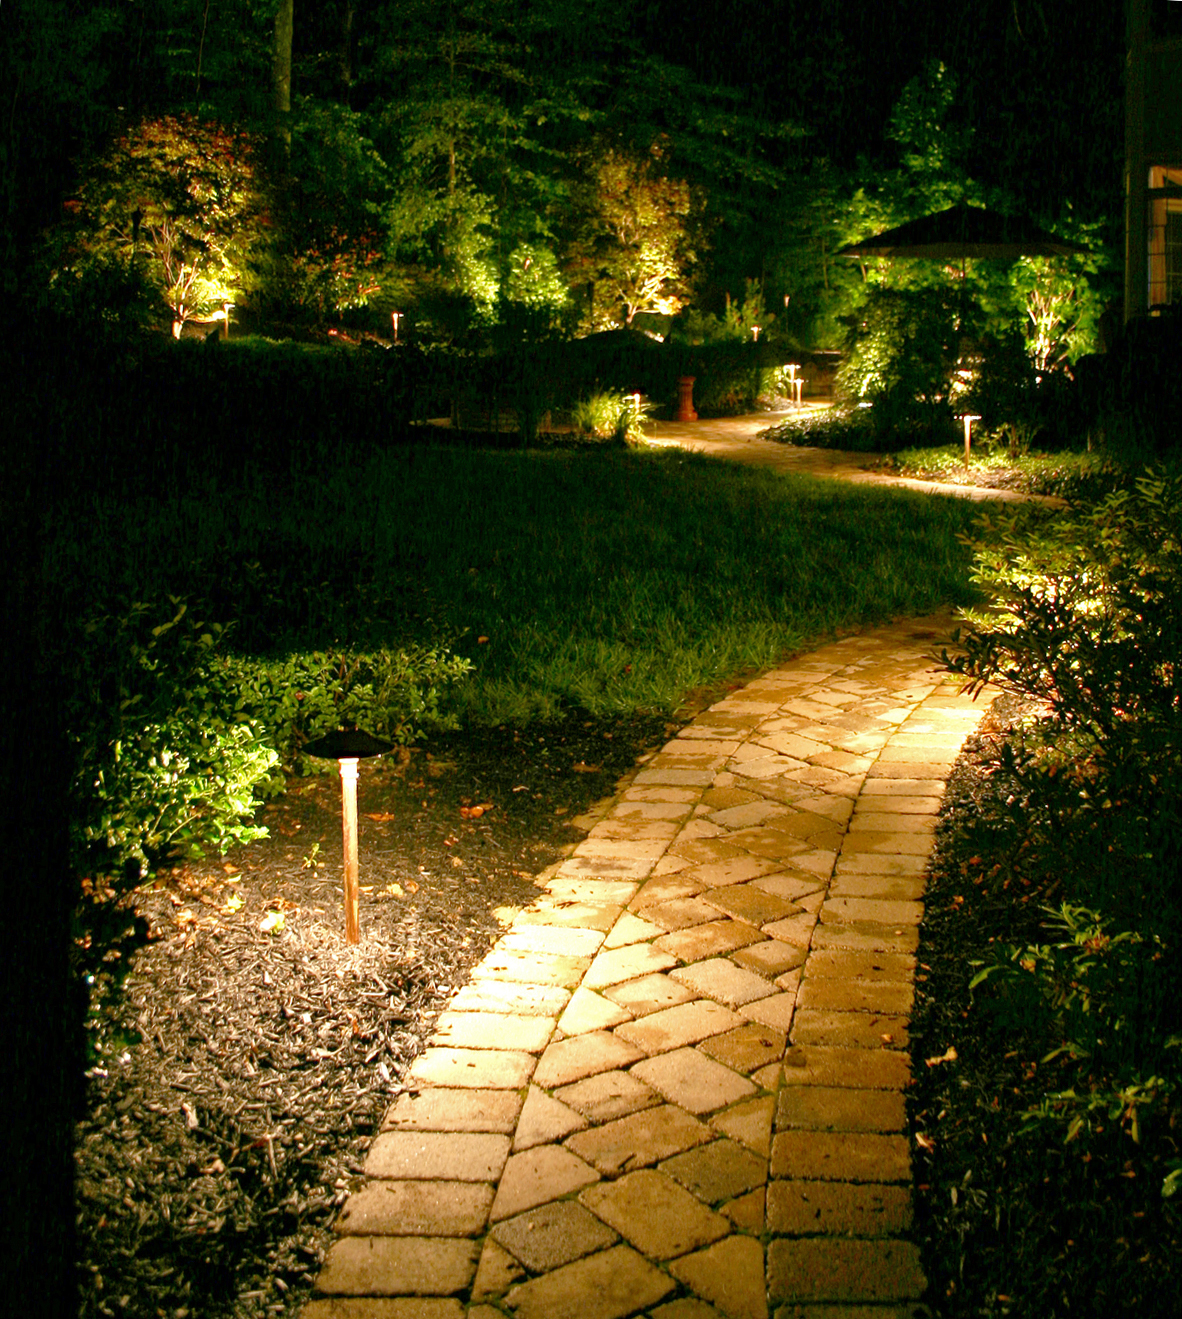 Driveway Lights Guide Outdoor Lighting Ideas Tips: Lighting Your Driveway And Pathway